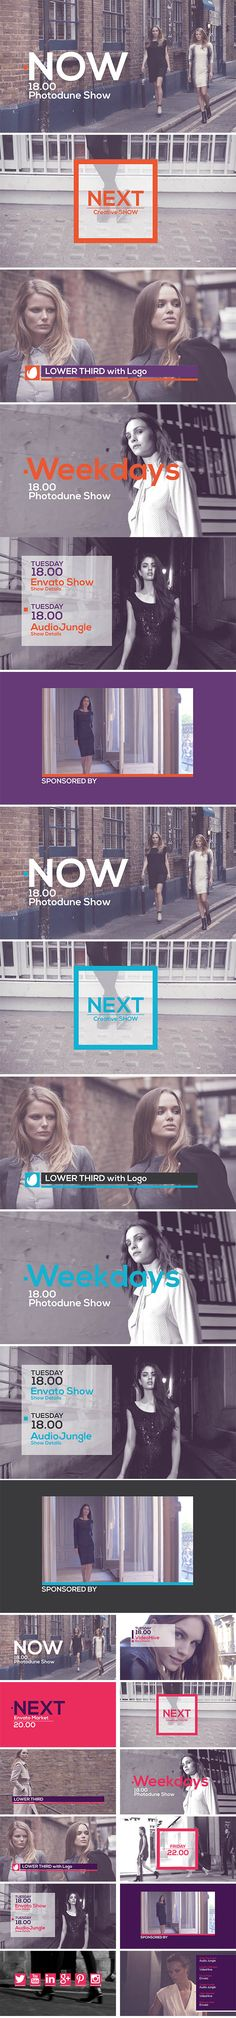 Flat Broadcast Pack - After Effects Project Files | VideoHive